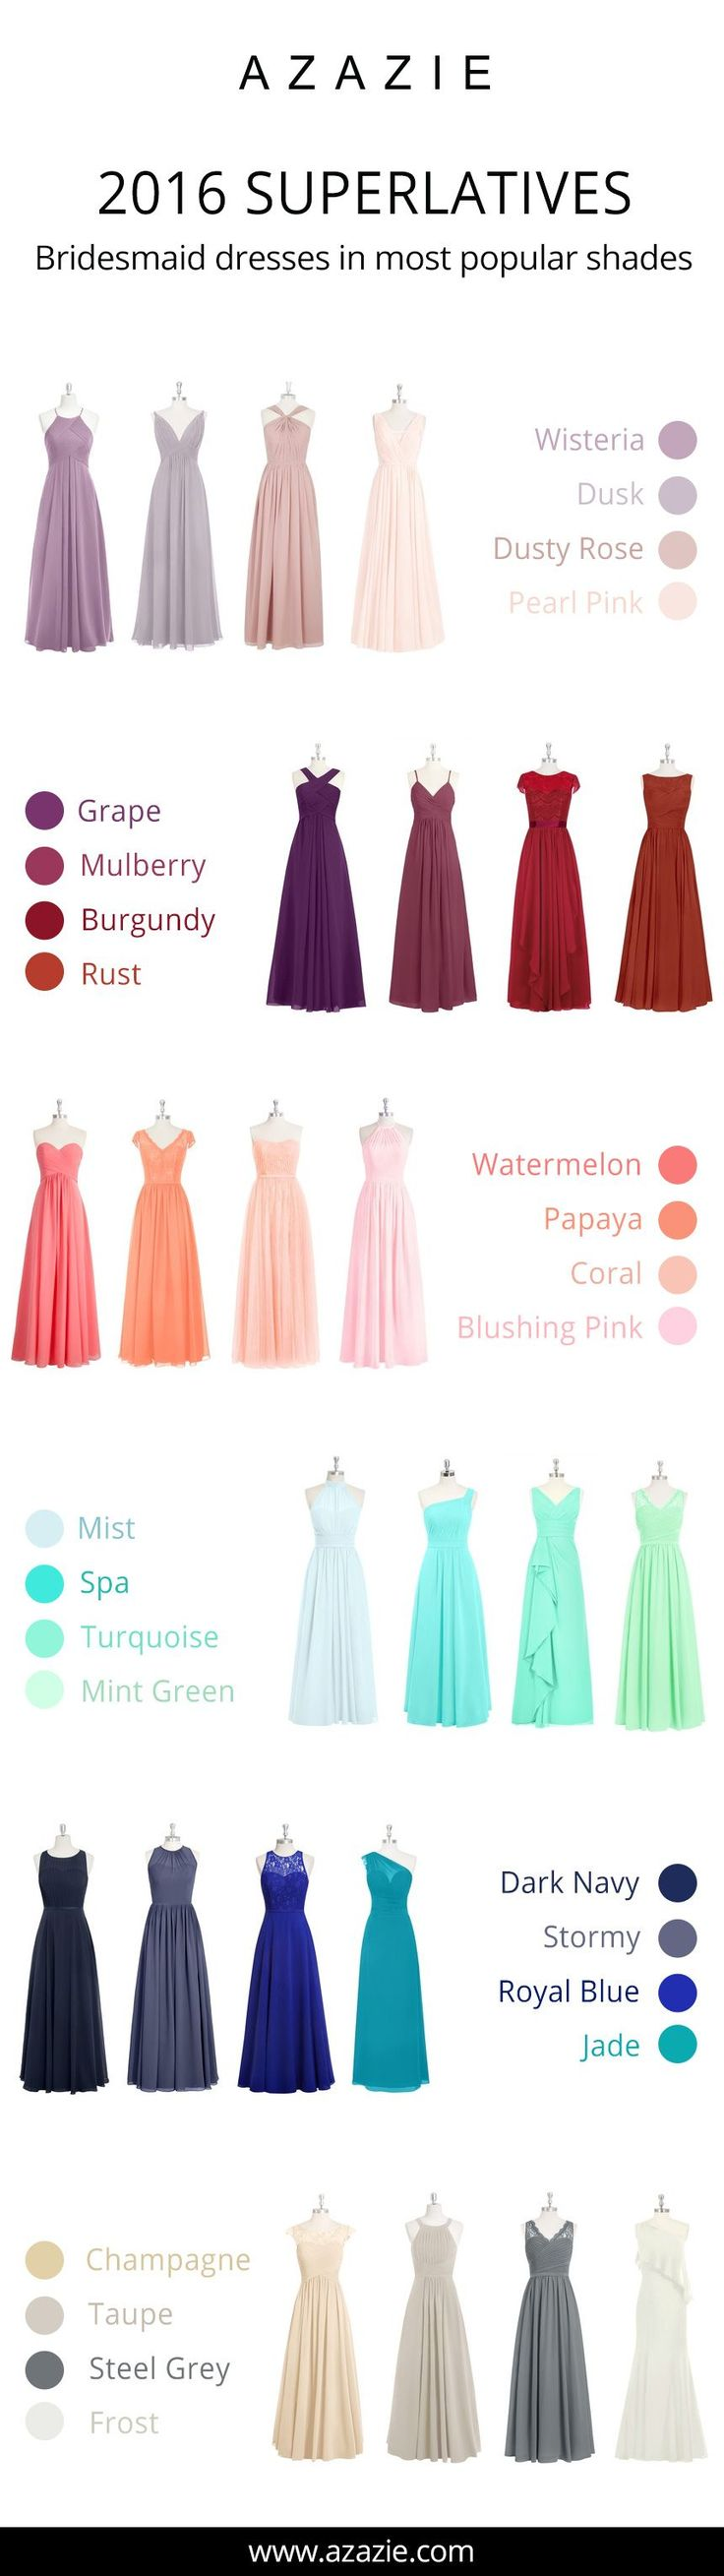 Azazie is the online destination for special occasion dresses. Our online boutique connects bridesmaids and brides with over 400 on-trend styles, where each is available in 50+ colors. Image source